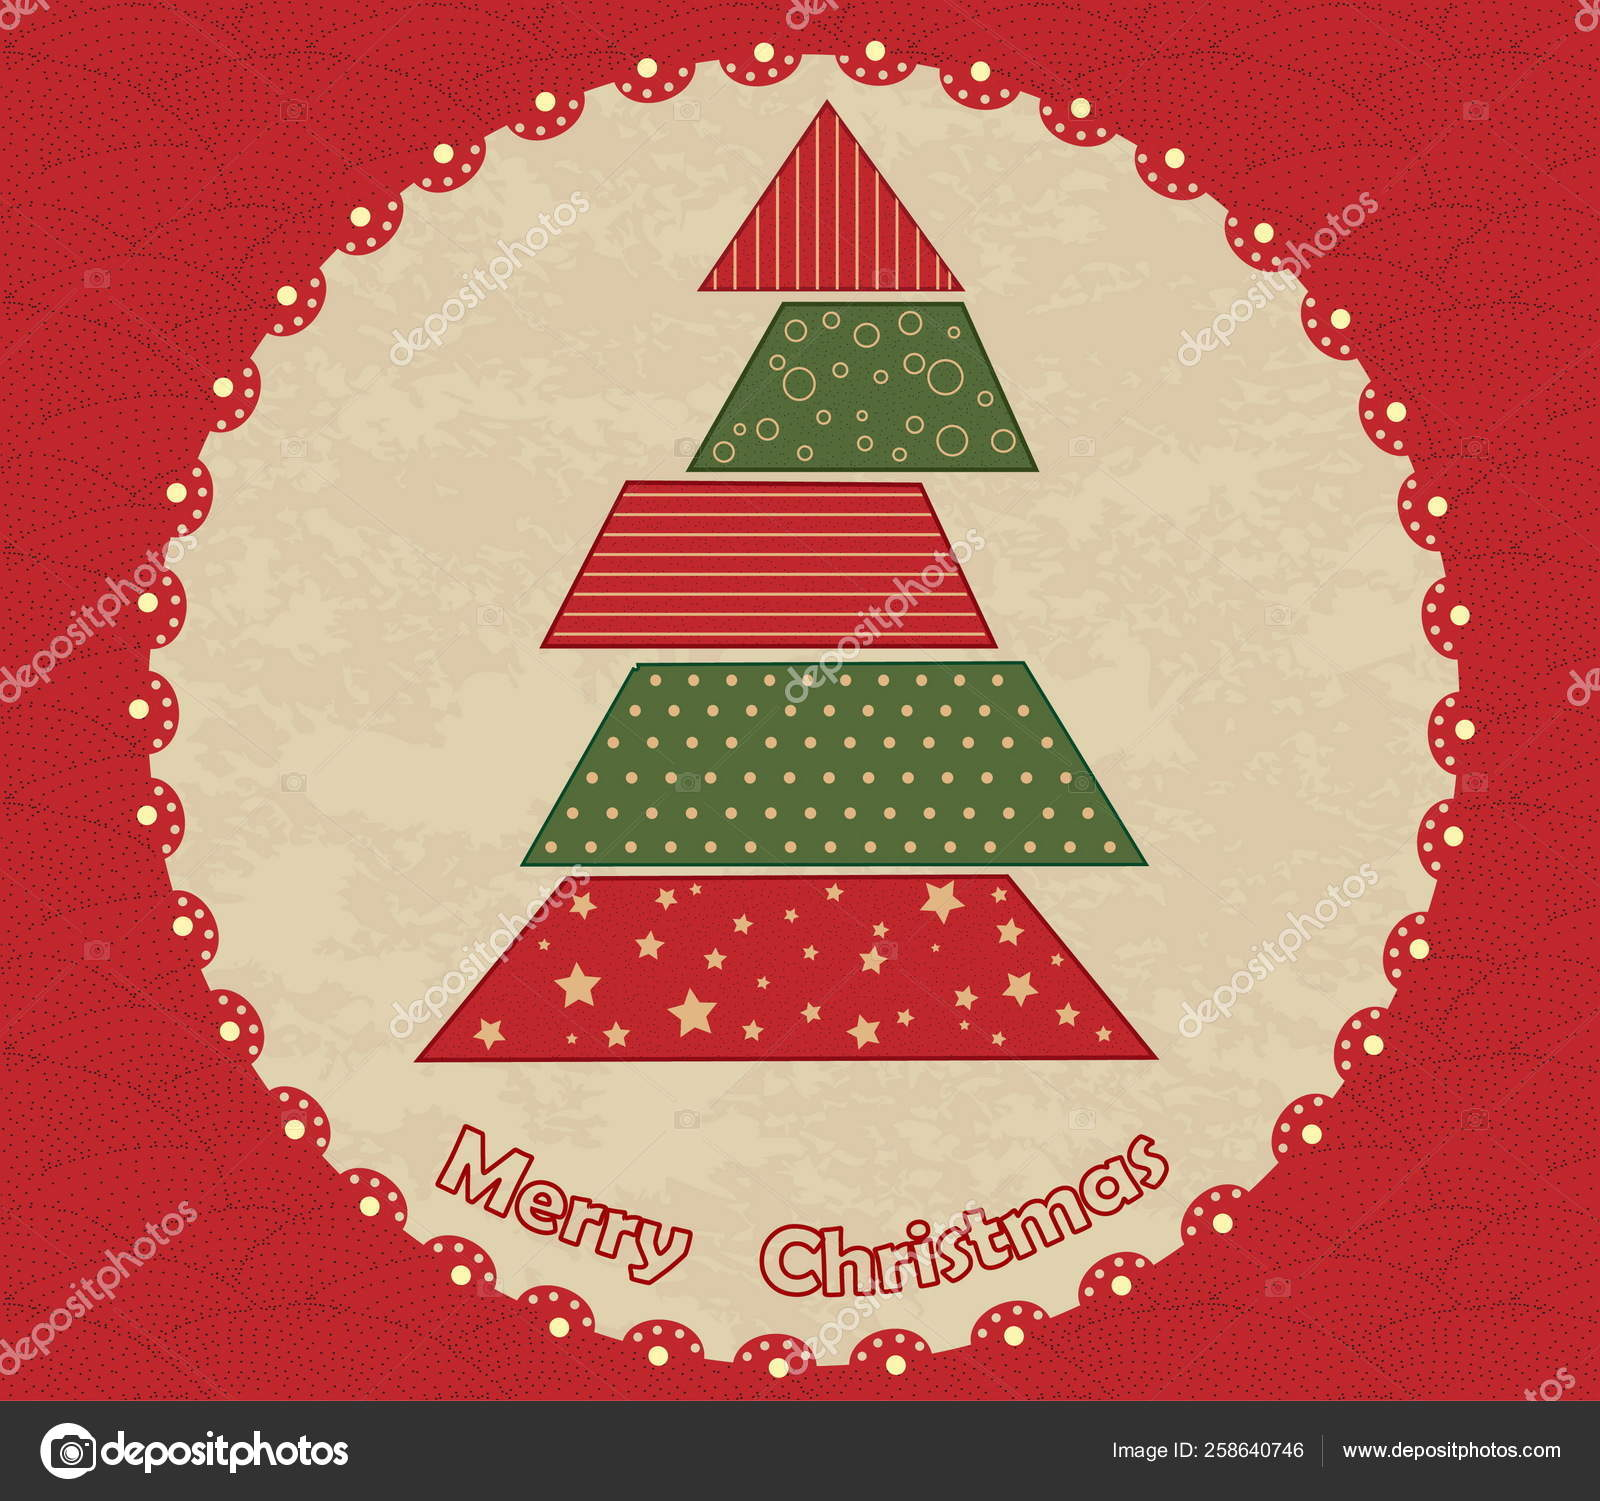 Christmas Tree Green Red Vintage Texture Stock Photo C Yayimages 258640746